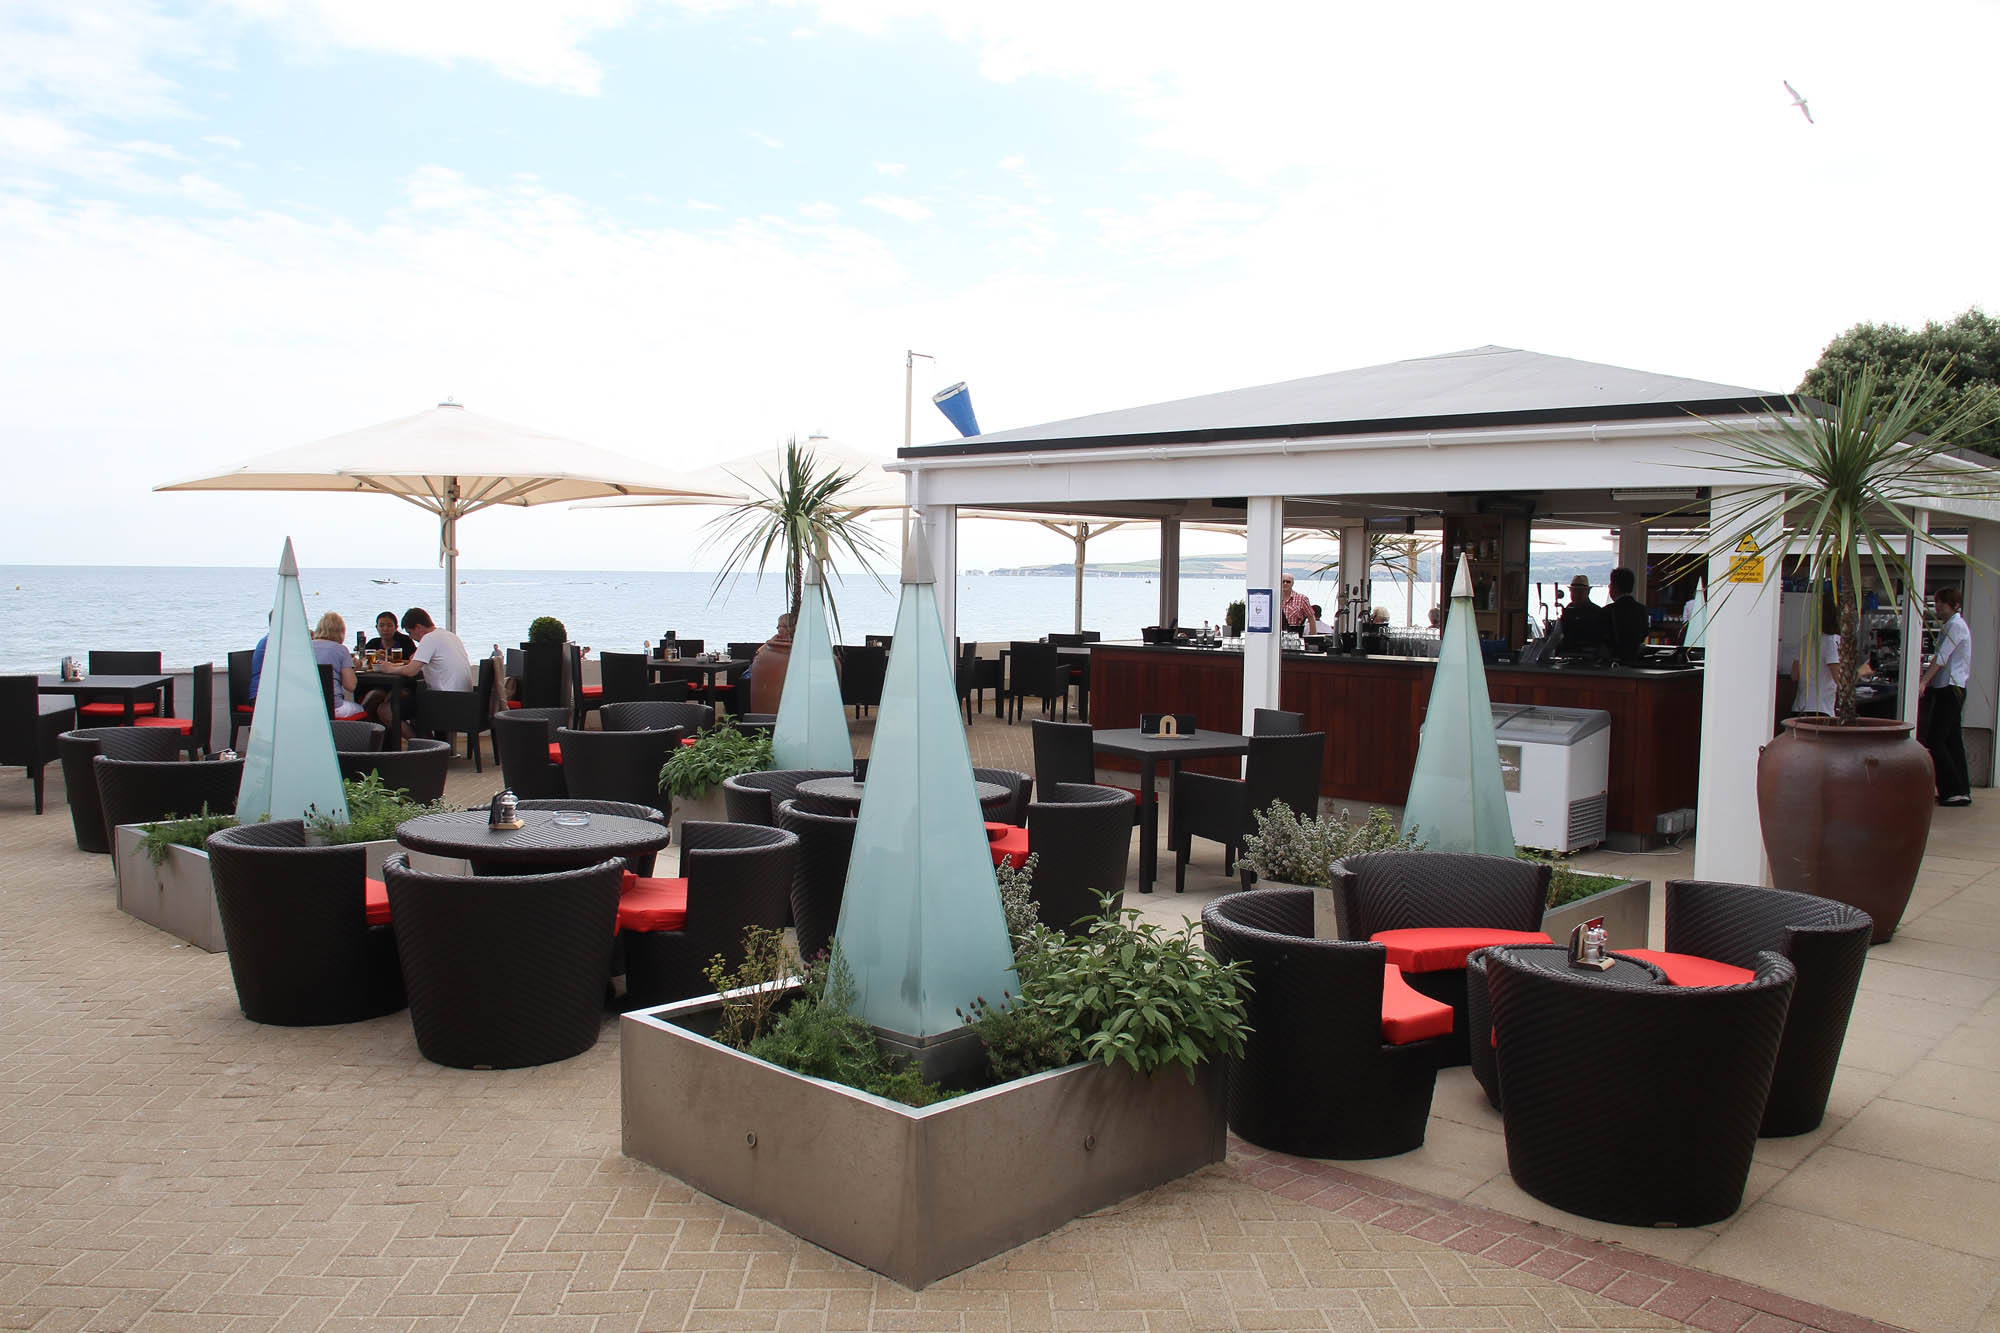 Seaview restaurant terrace at the sandbanks hotel for The terrace bar and food